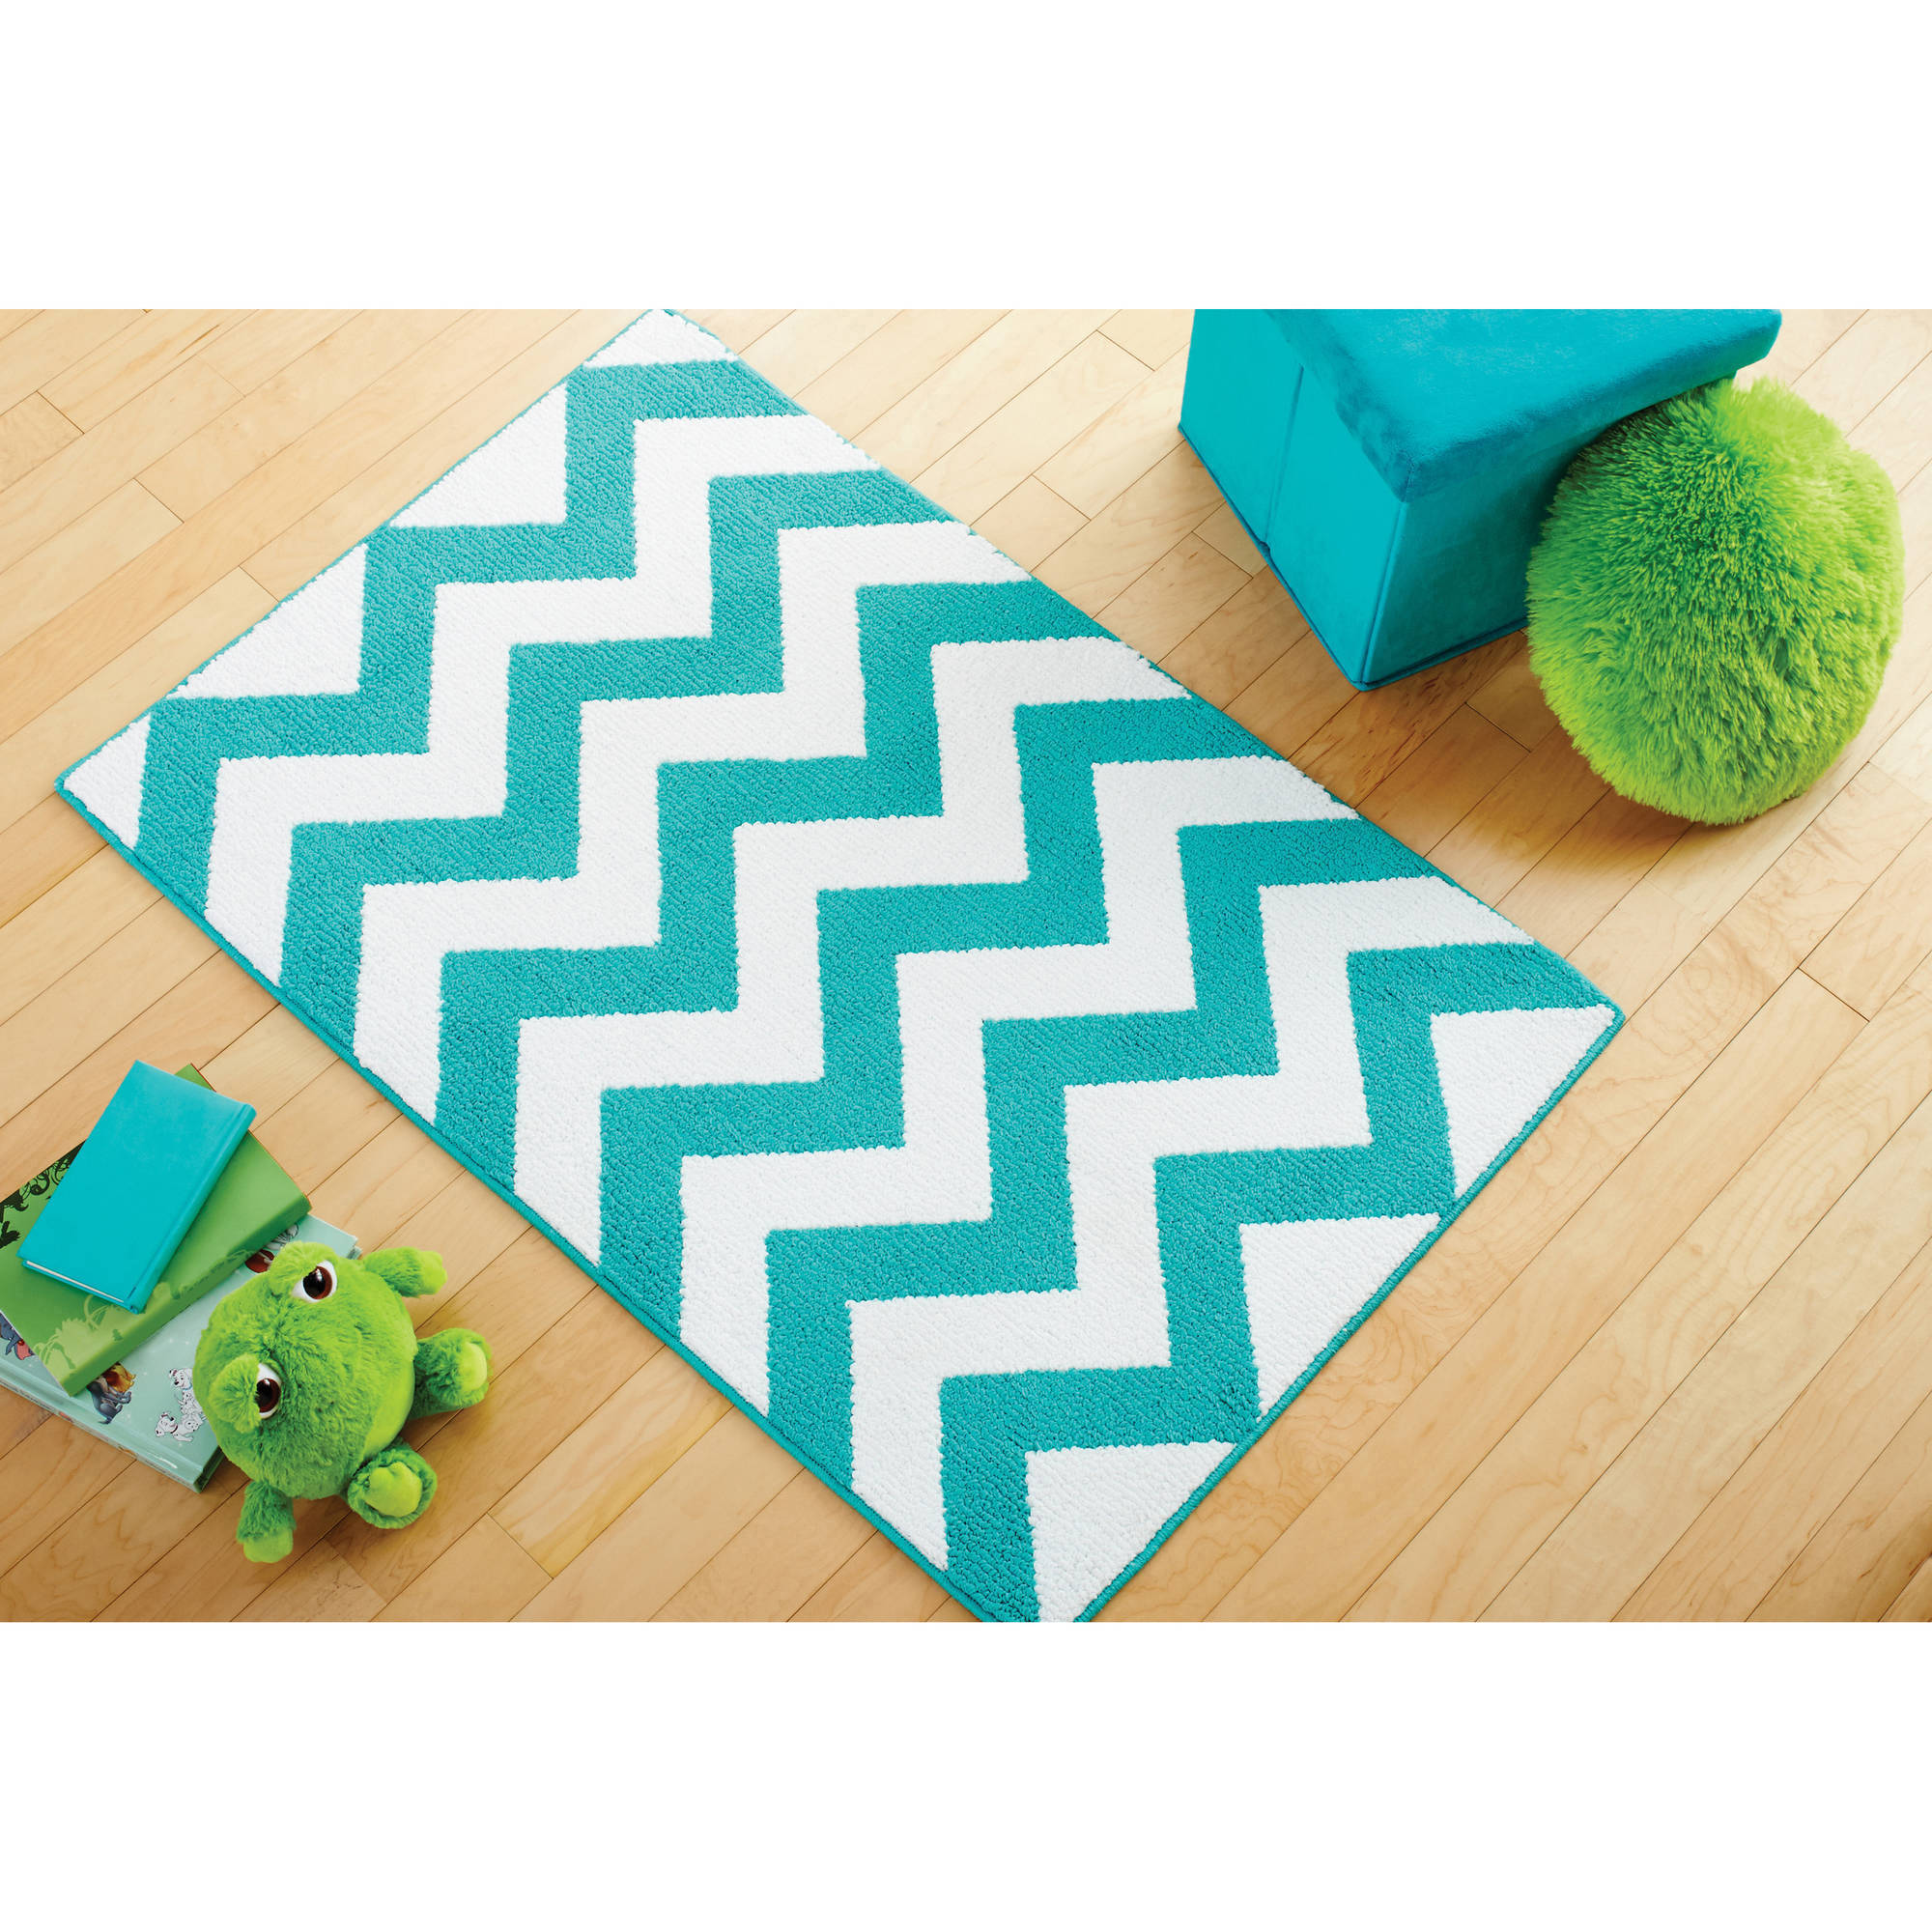 Mainstays Kids Chevron Pattern Rug Available In Multiple Colors And ...